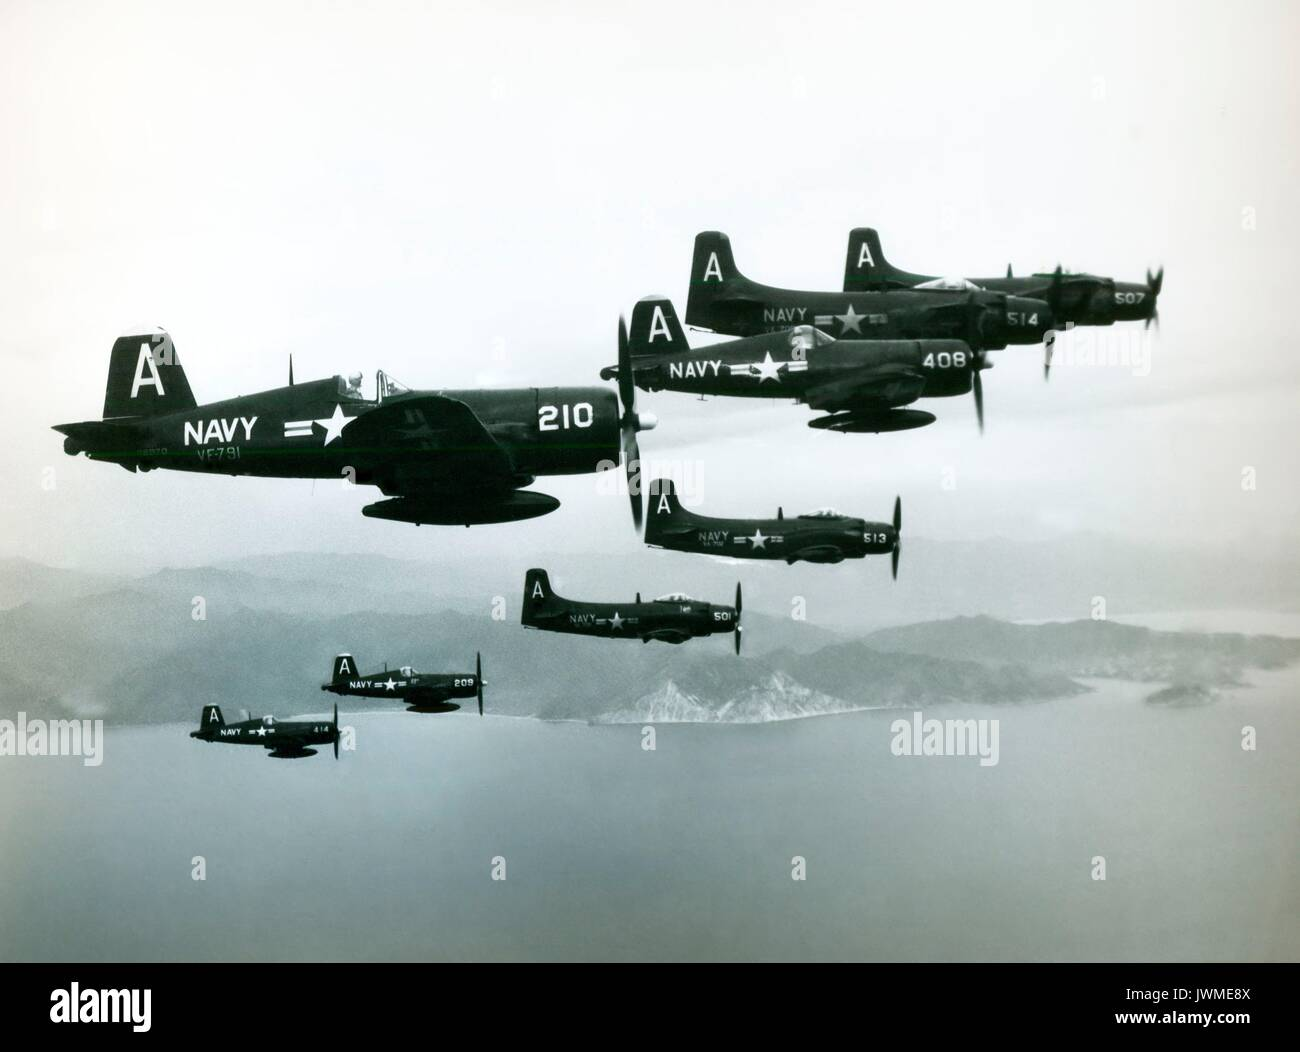 U.S. Navy Douglas A-1 Skyraiders and Vought F4U Corsair aircraft from the USS Antietam air group fly in close formation as they fly combat missions over Korea during the Korean War in 1952. - Stock Image